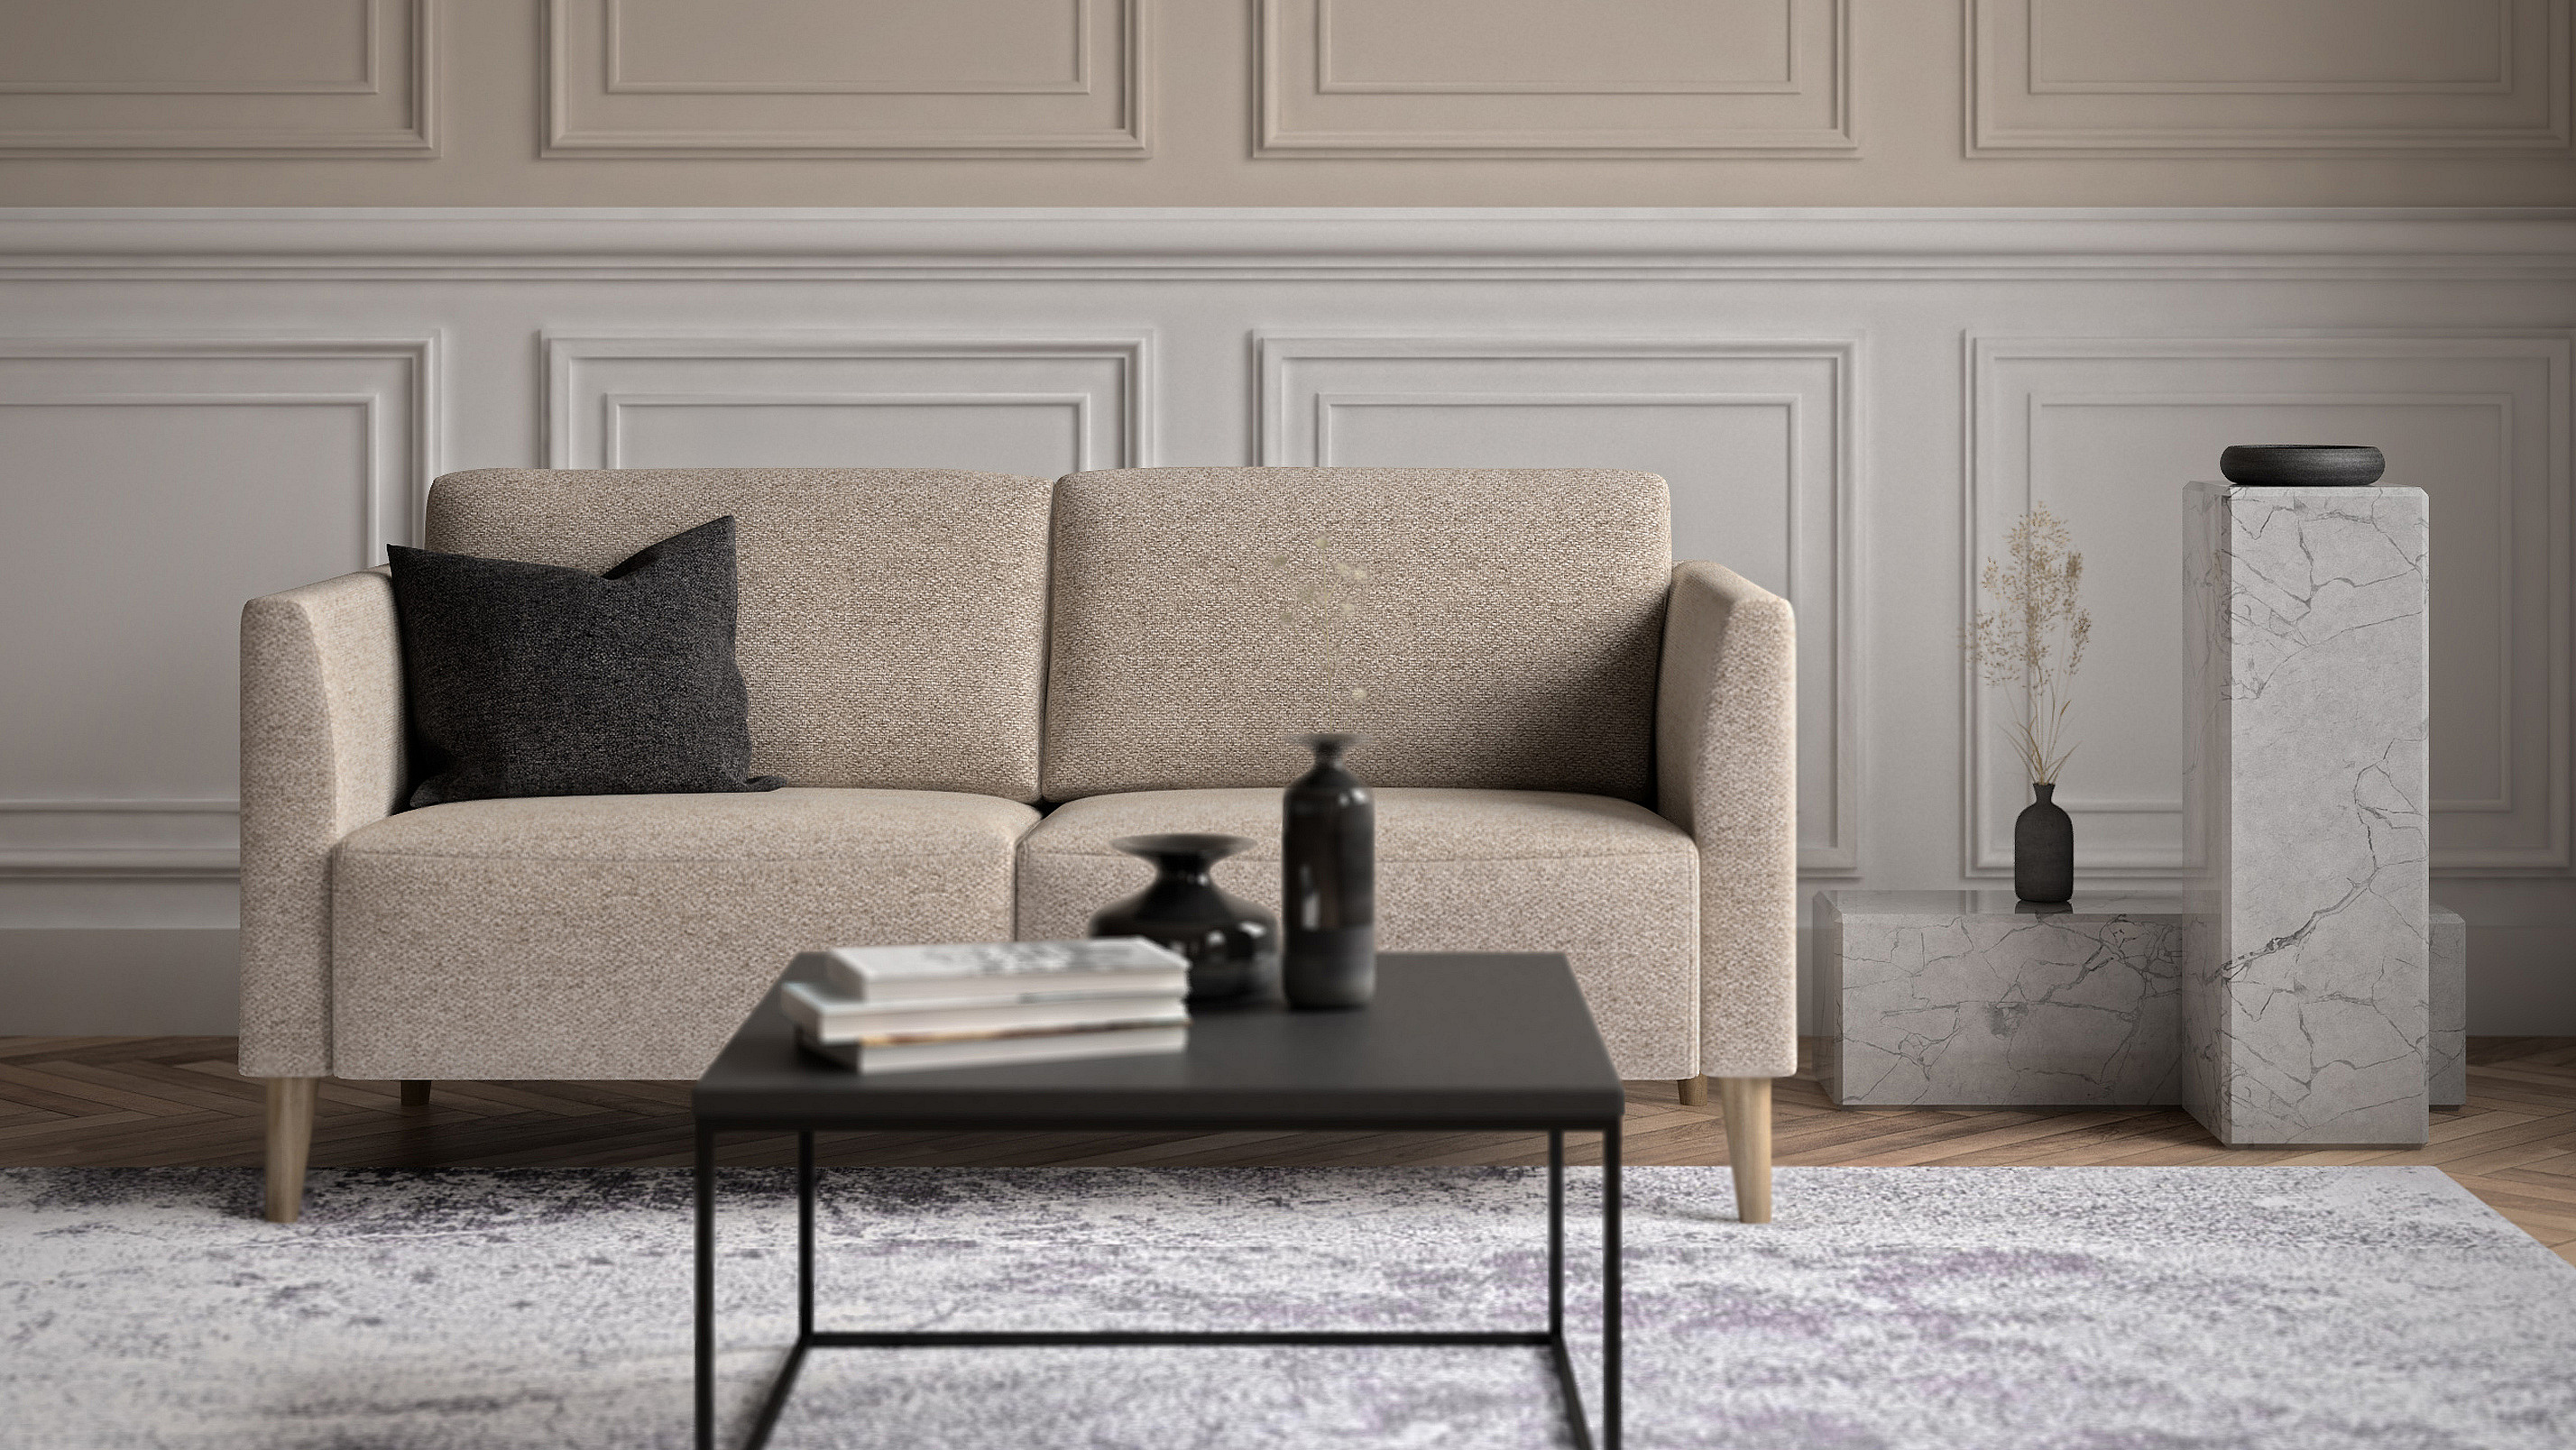 Living room example with the sofa Augusta in neutral colors.